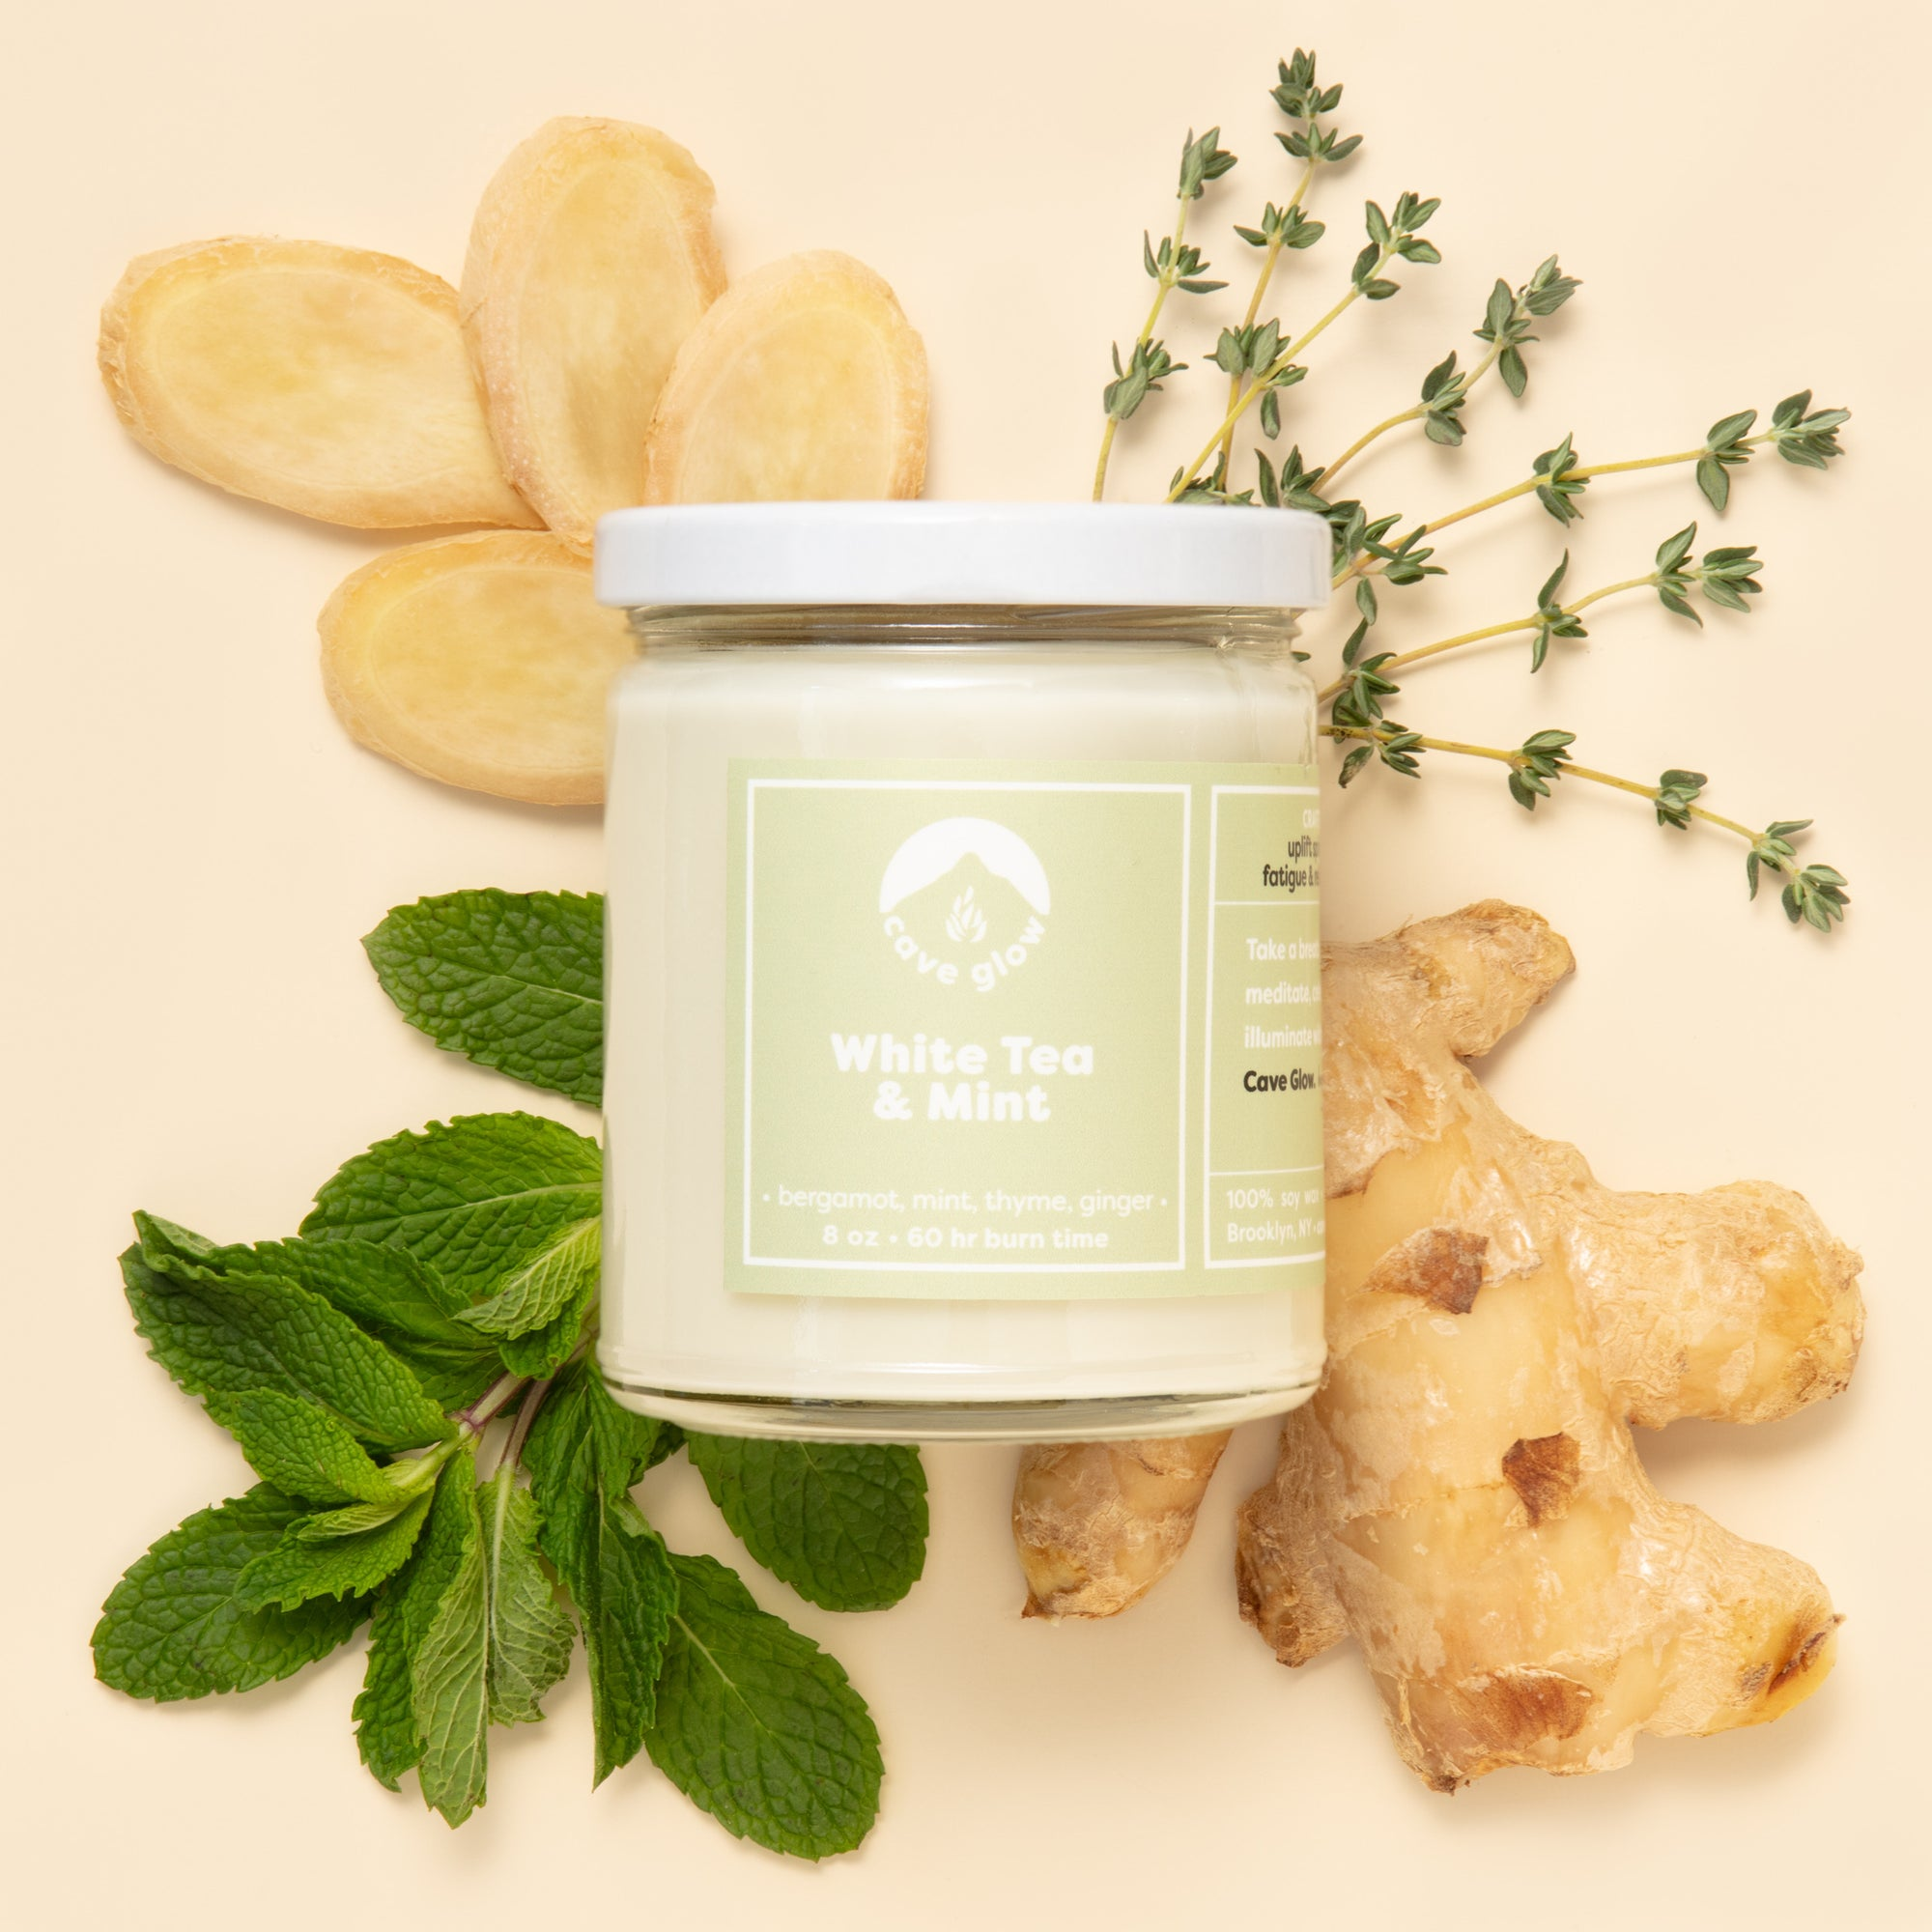 White Tea & Mint Candle by Cave Glow Studio